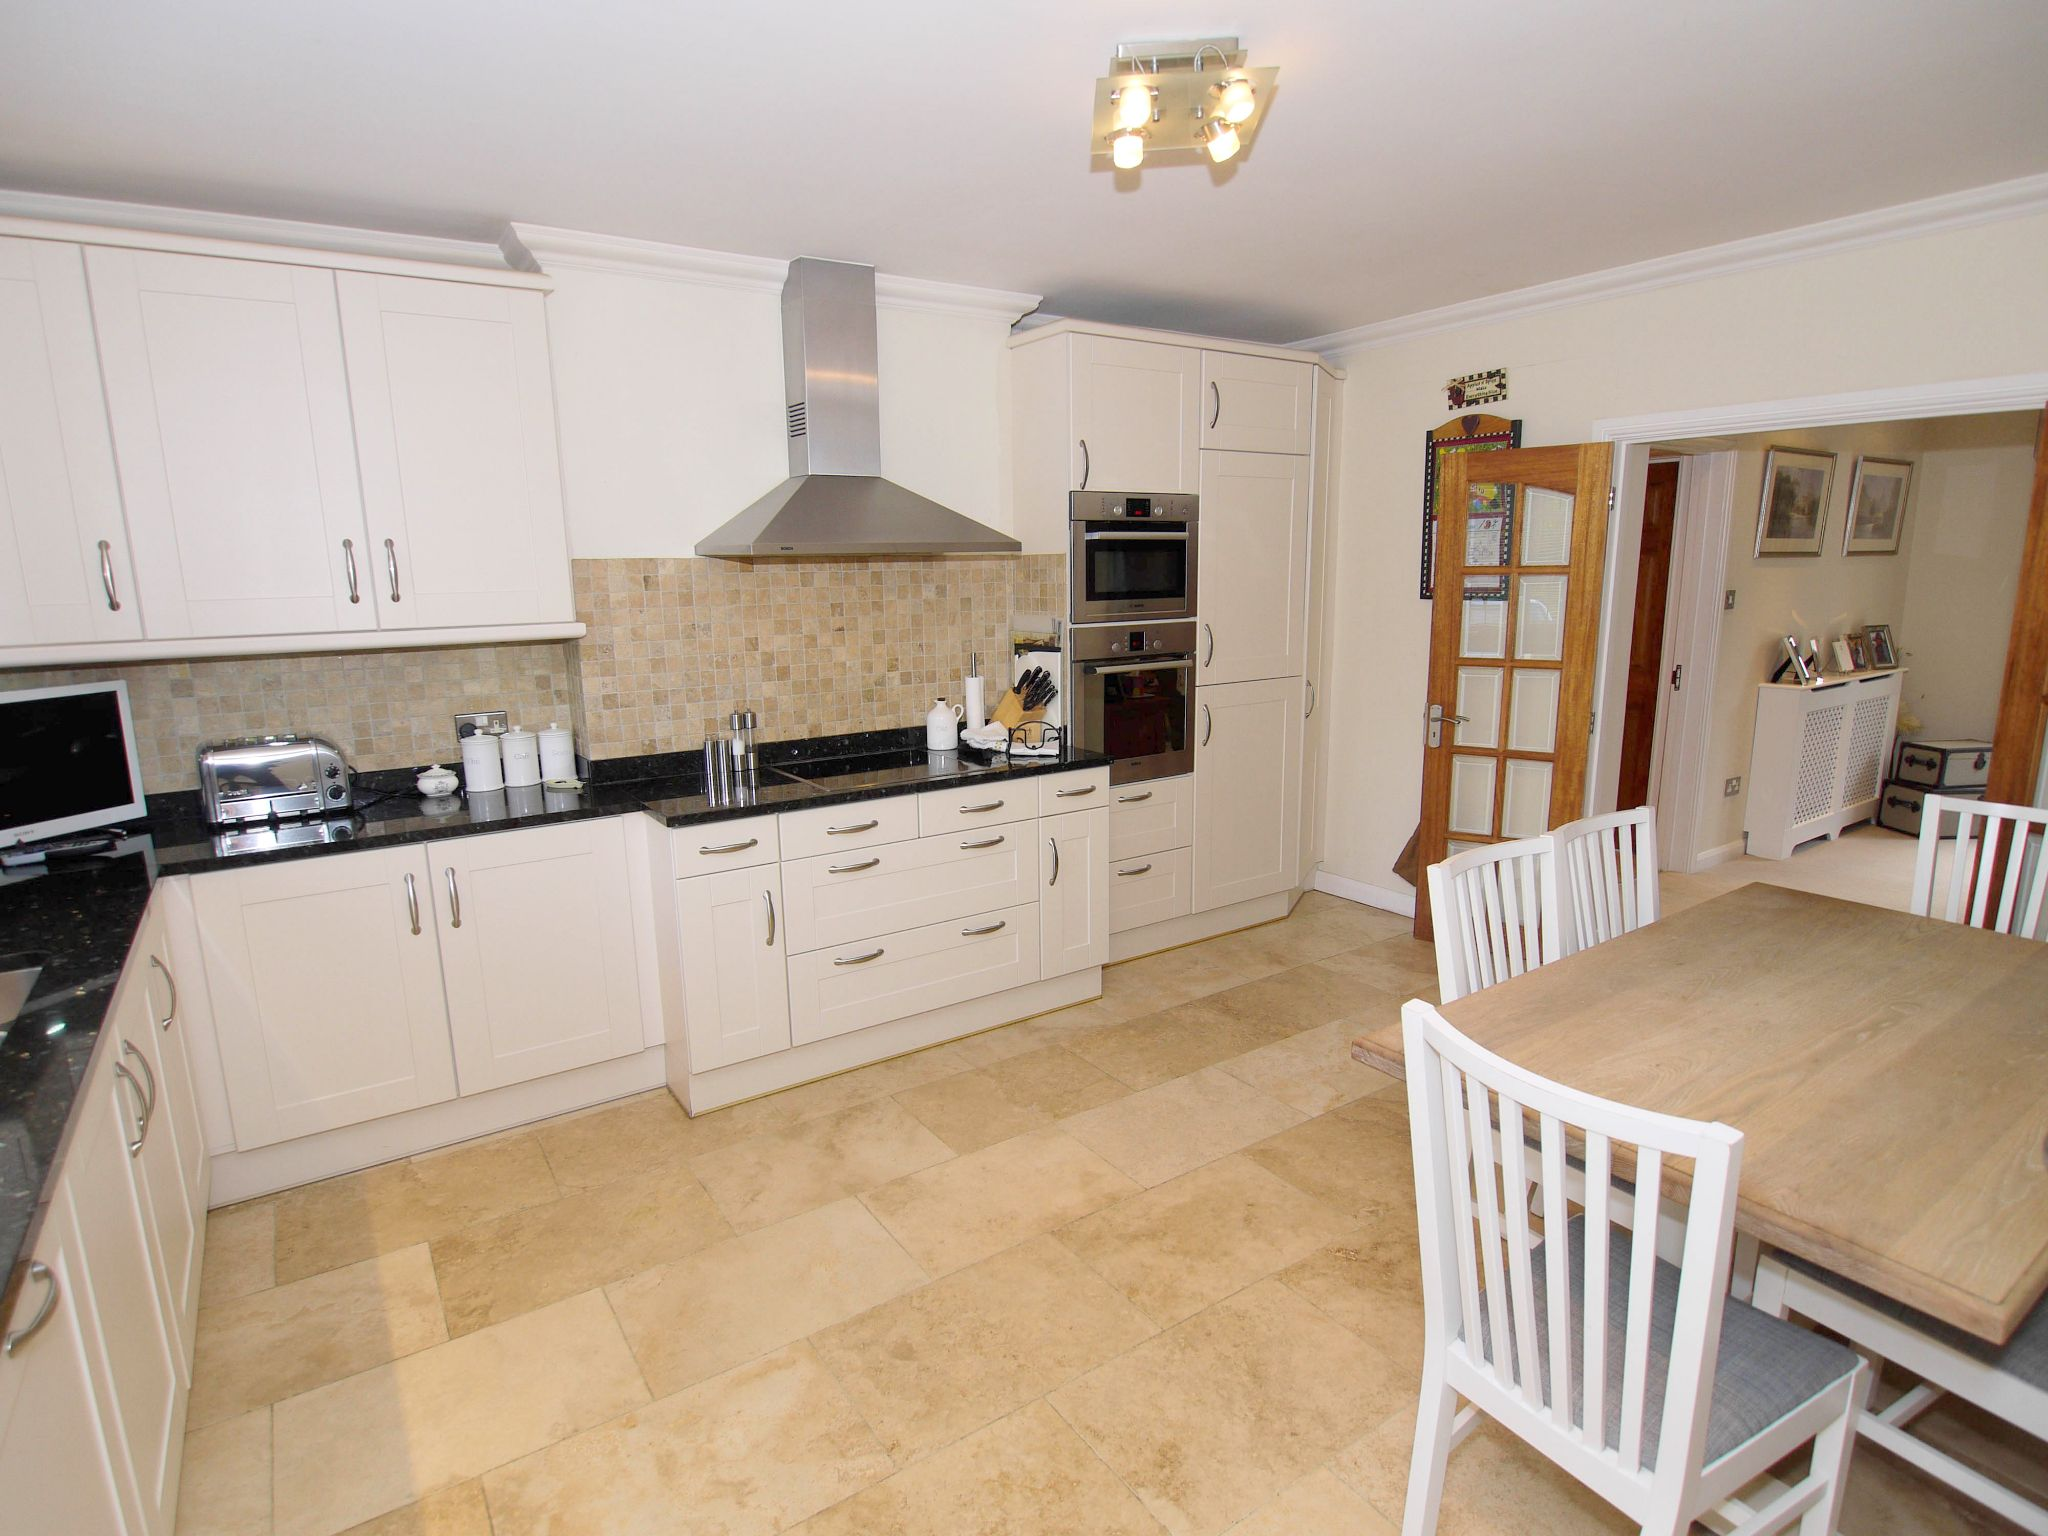 3 bedroom detached house Sold in Sevenoaks - Photograph 7